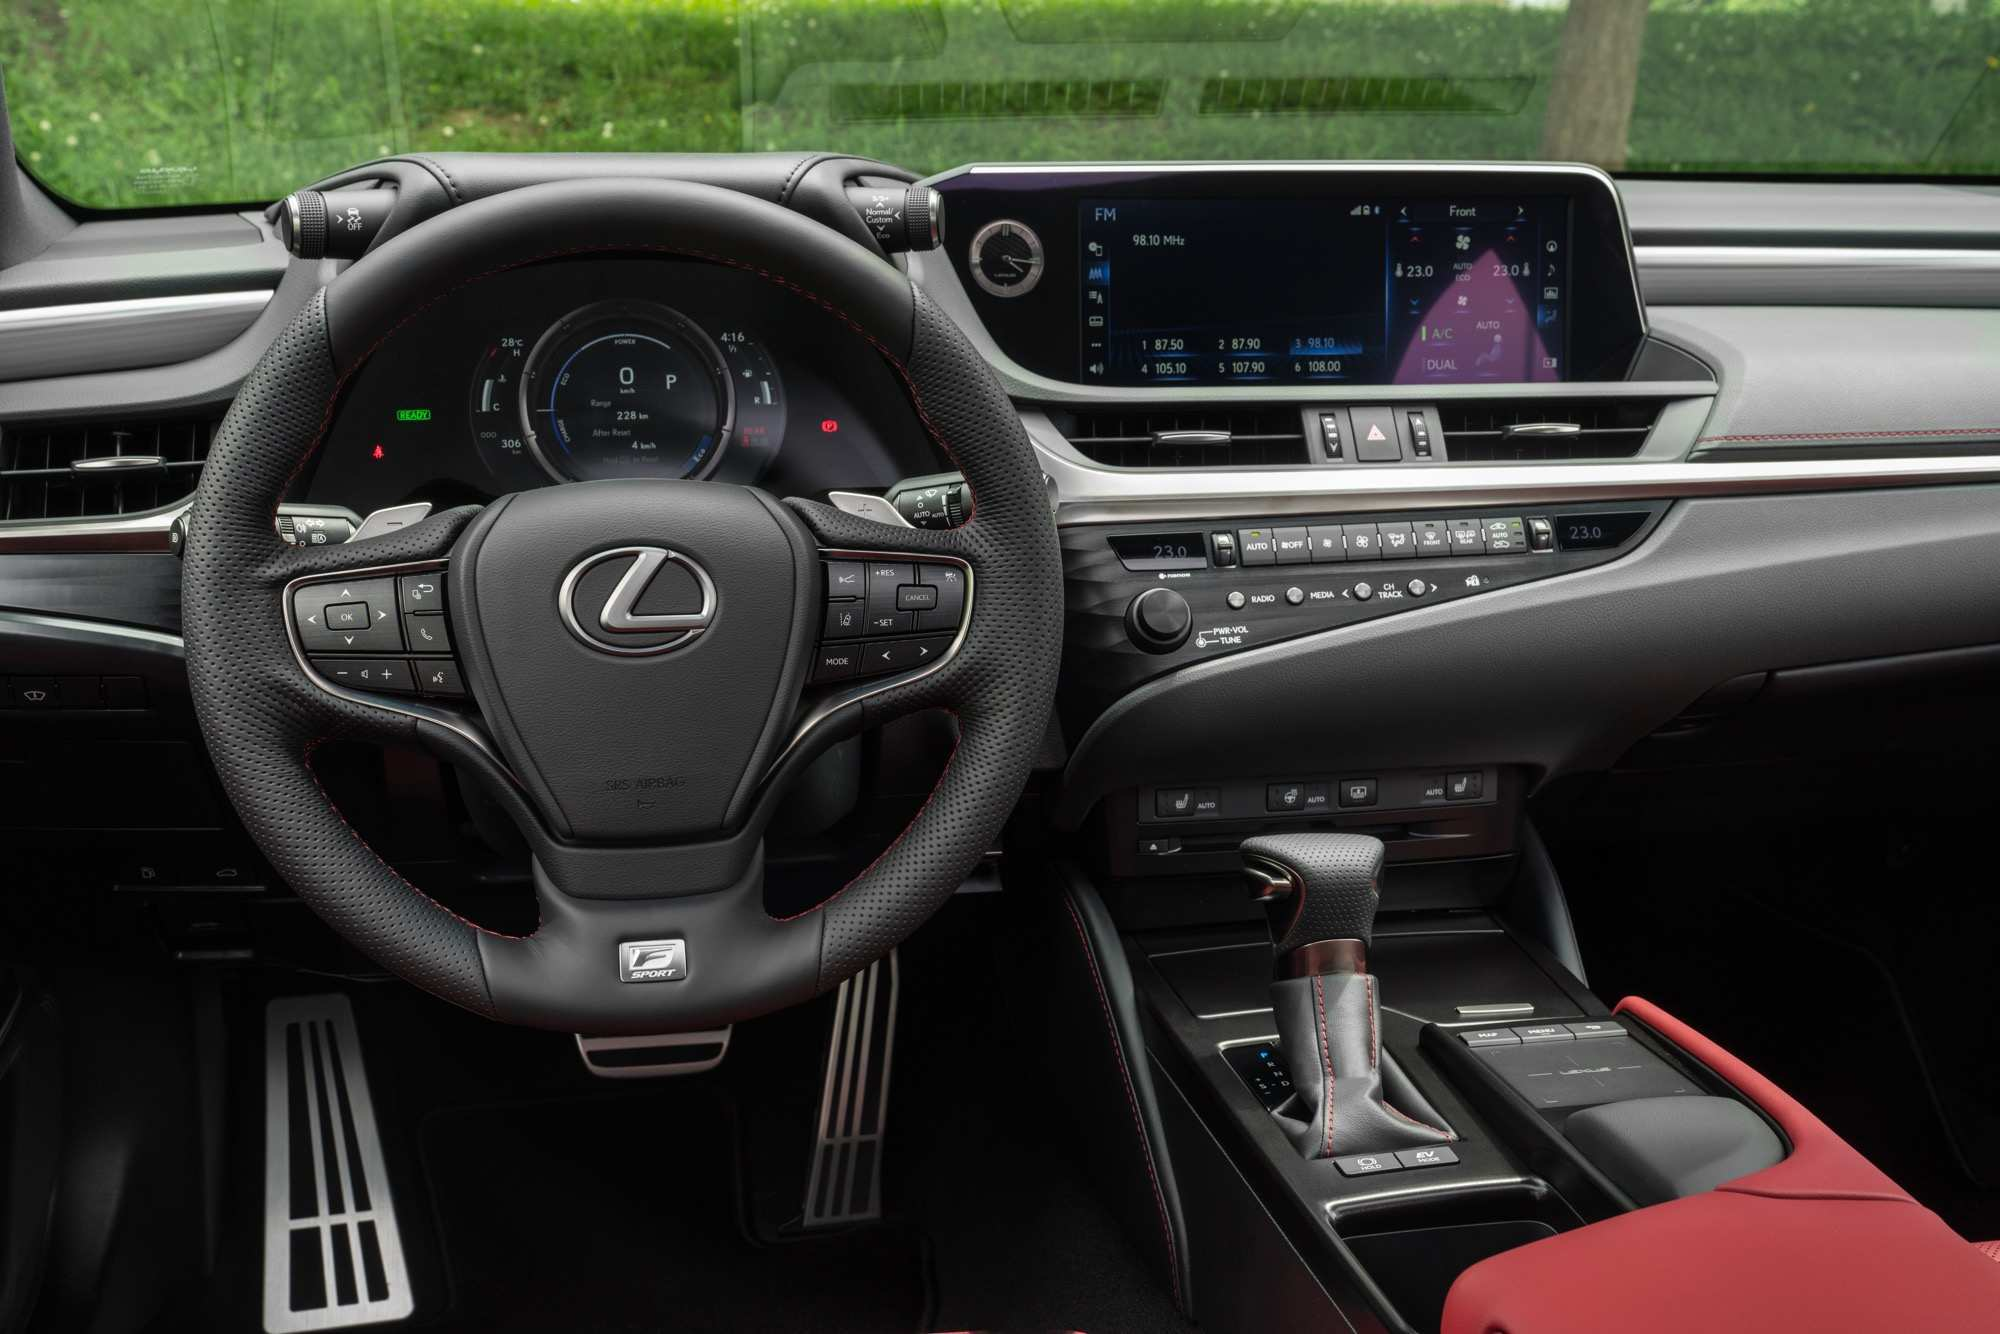 42 Gallery of 2019 Lexus Es 350 Interior Photos for 2019 Lexus Es 350 Interior